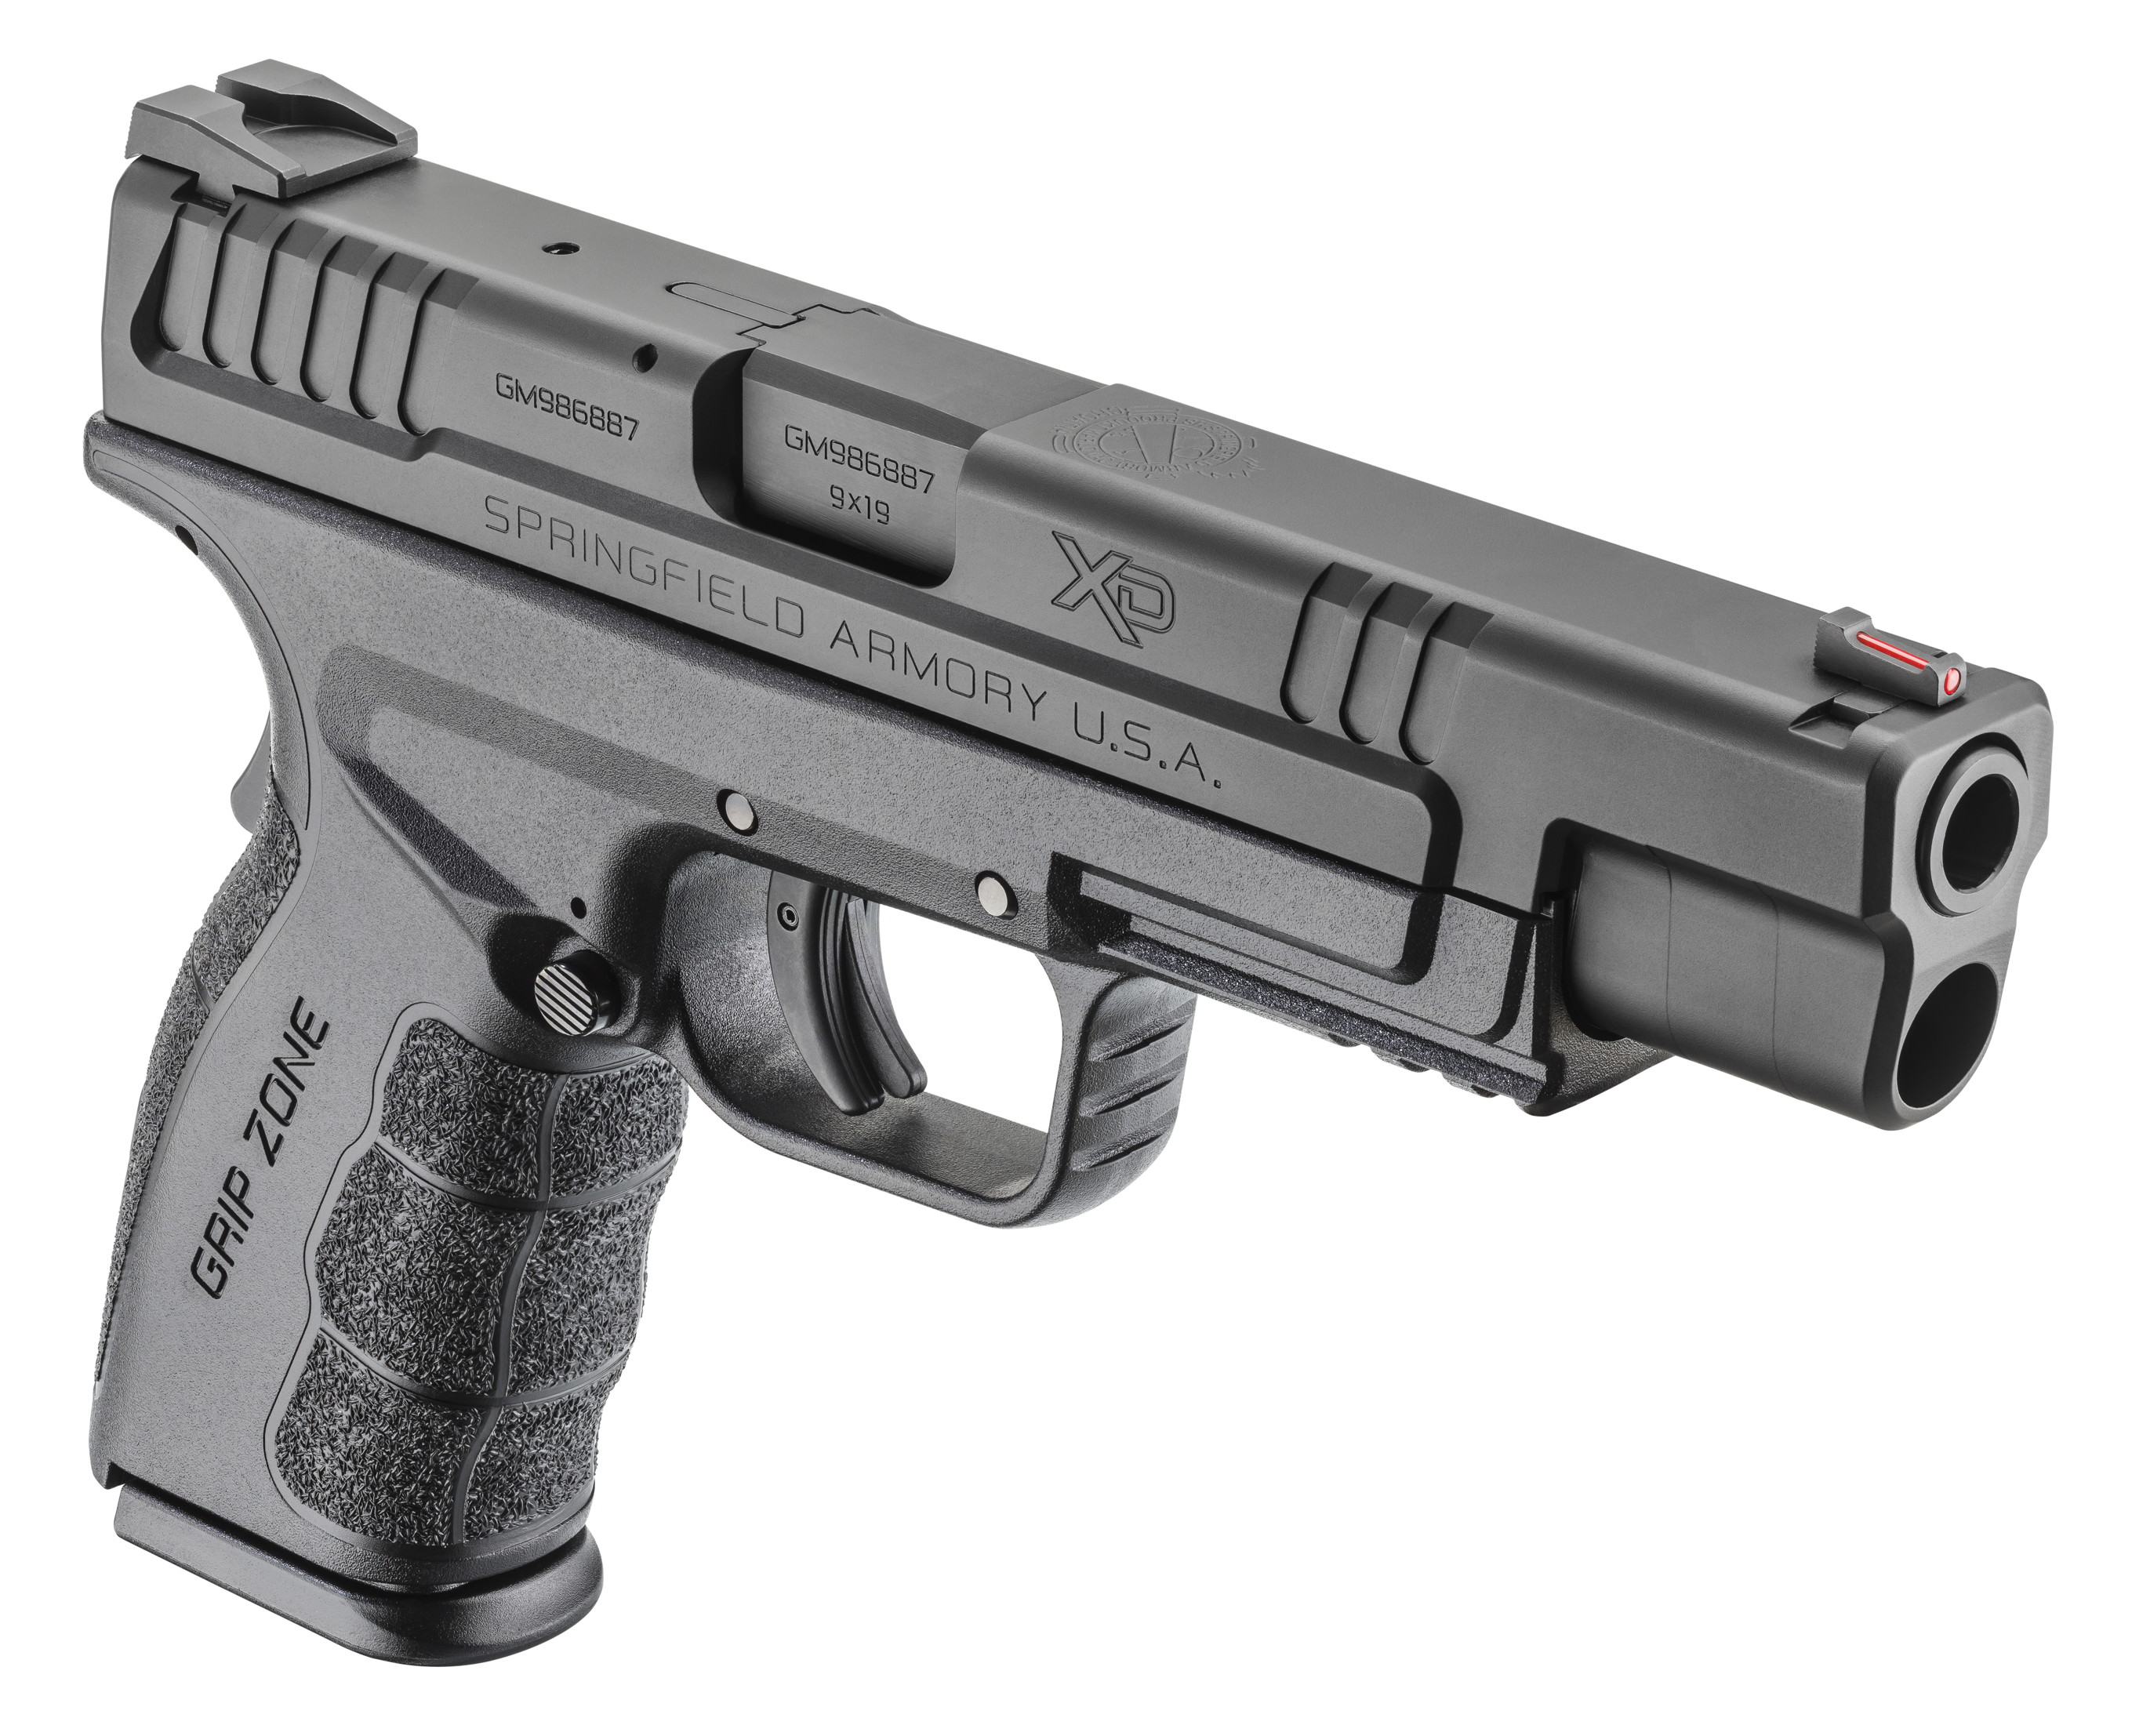 Press Release: Springfield Armory Announces New XD Mod 2 Tactical